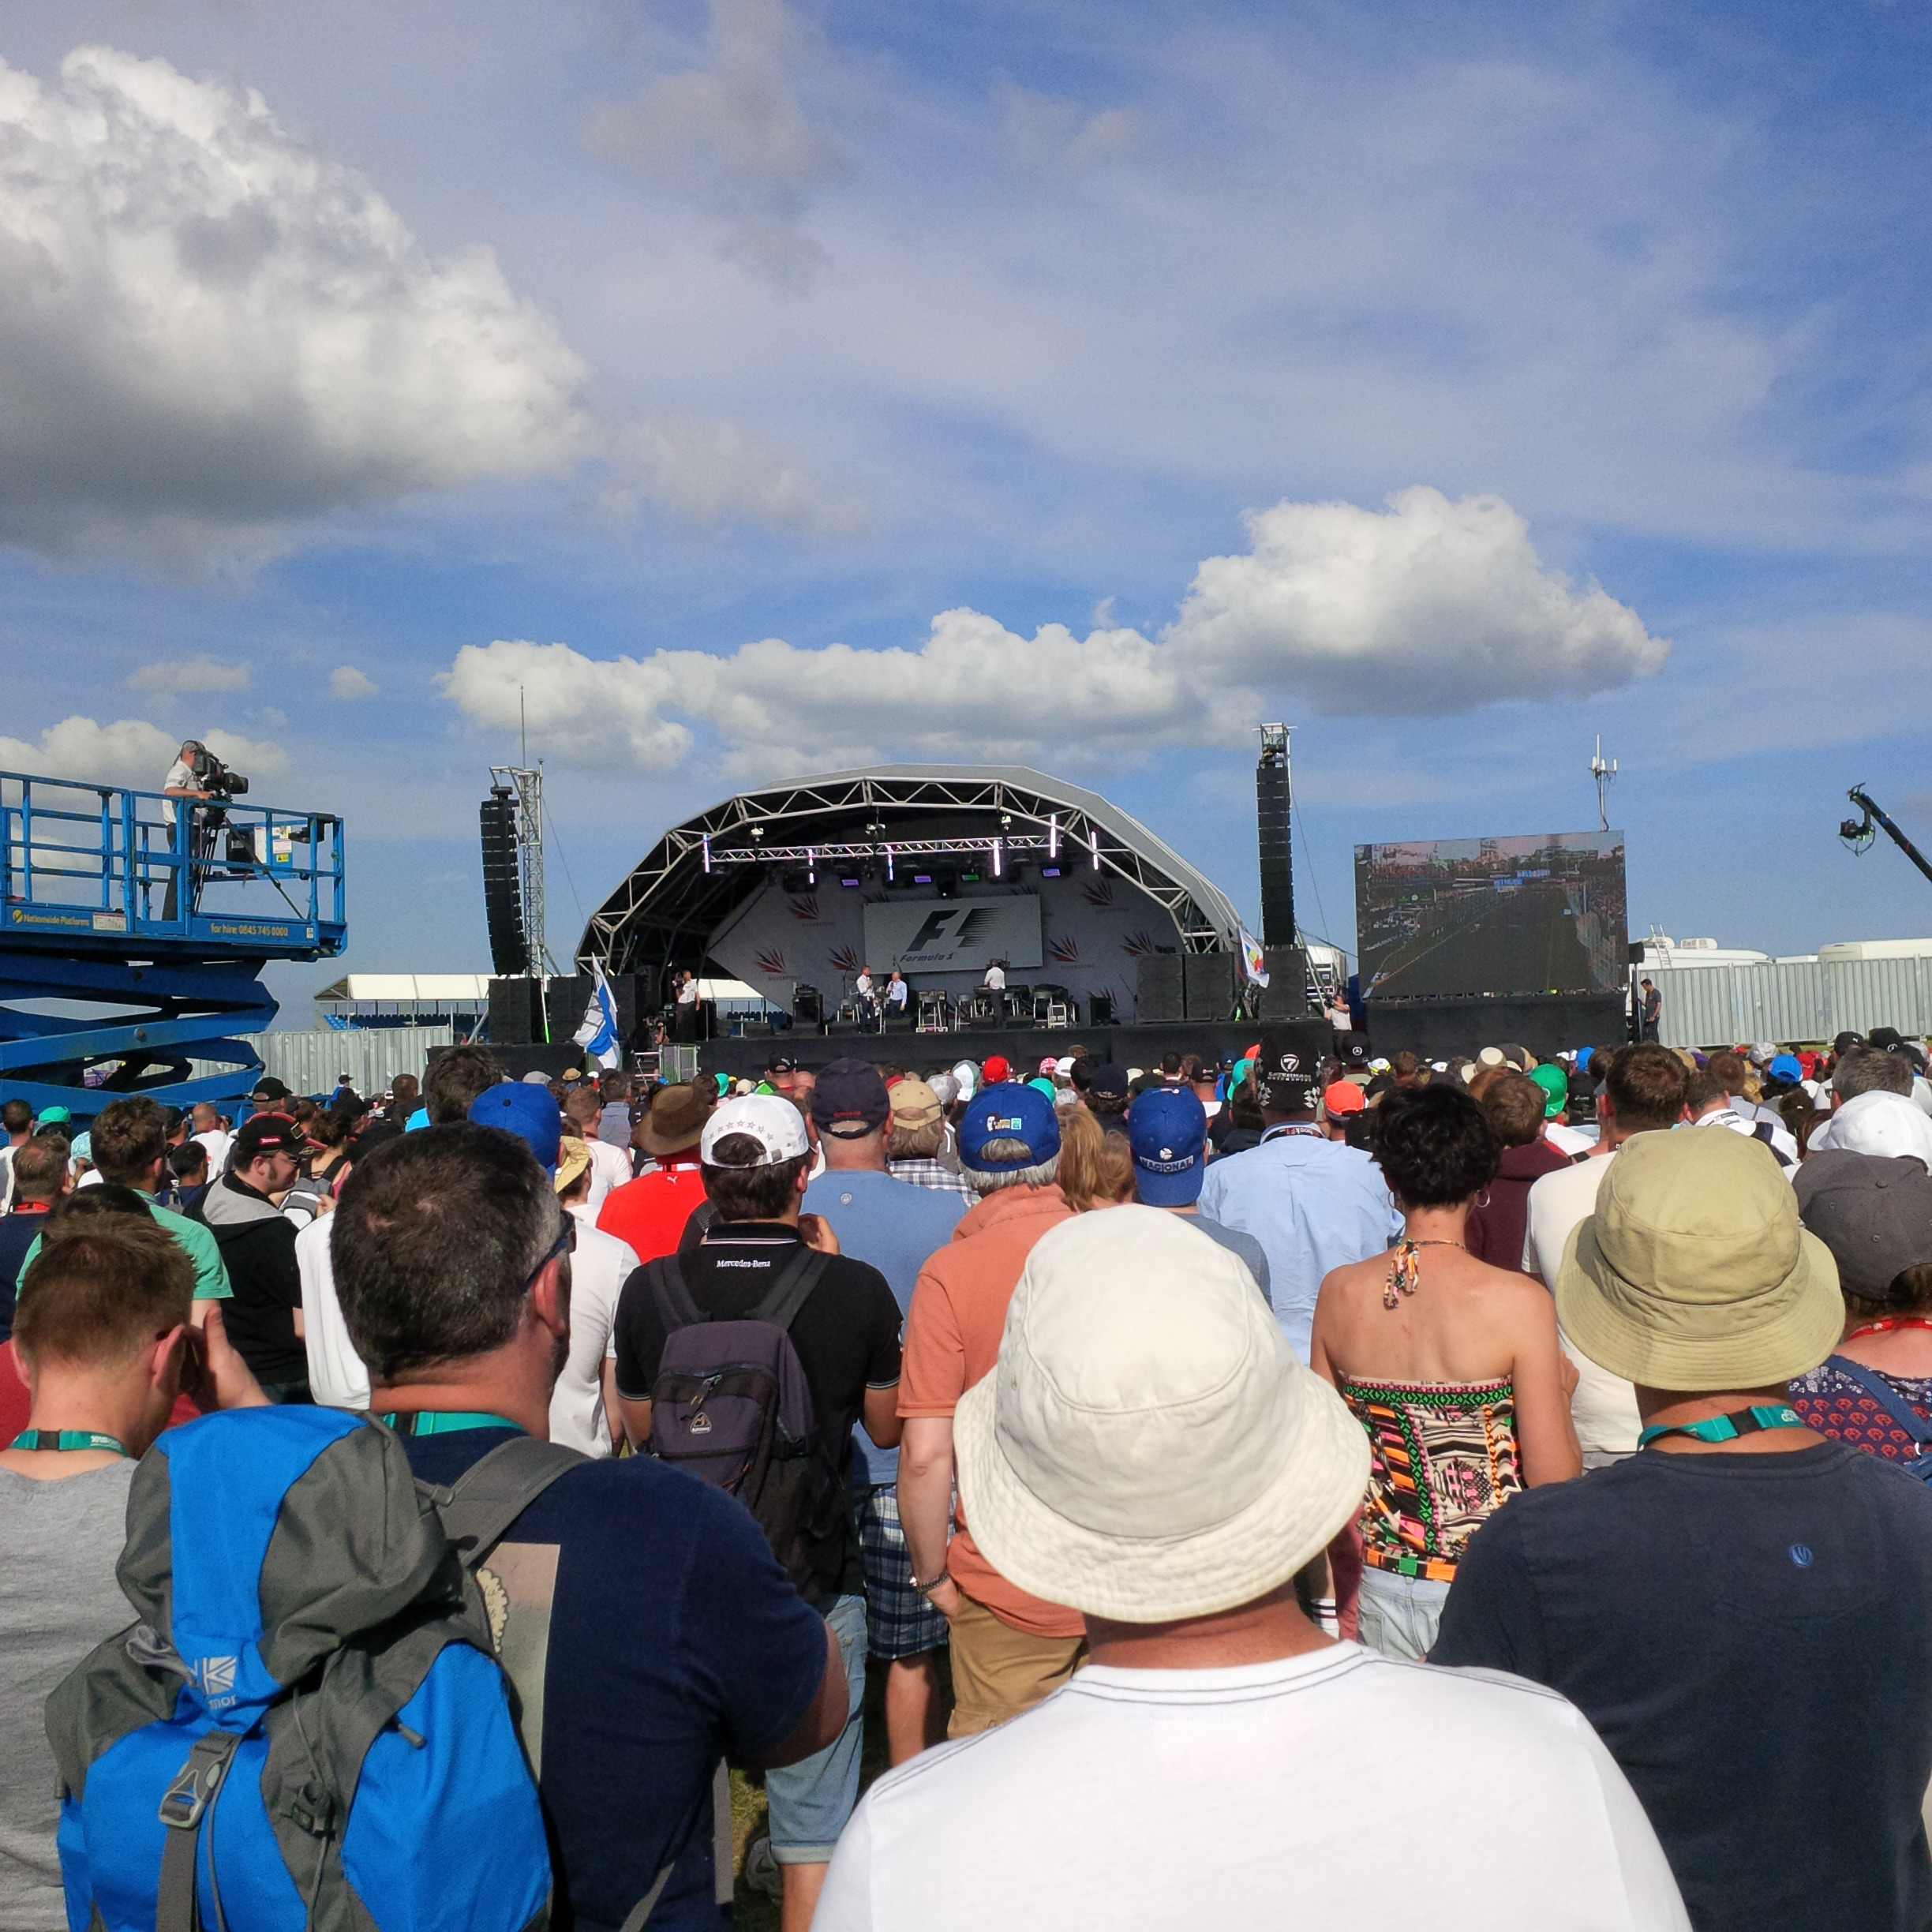 British Grand Prix: Crowds at event on soundstage